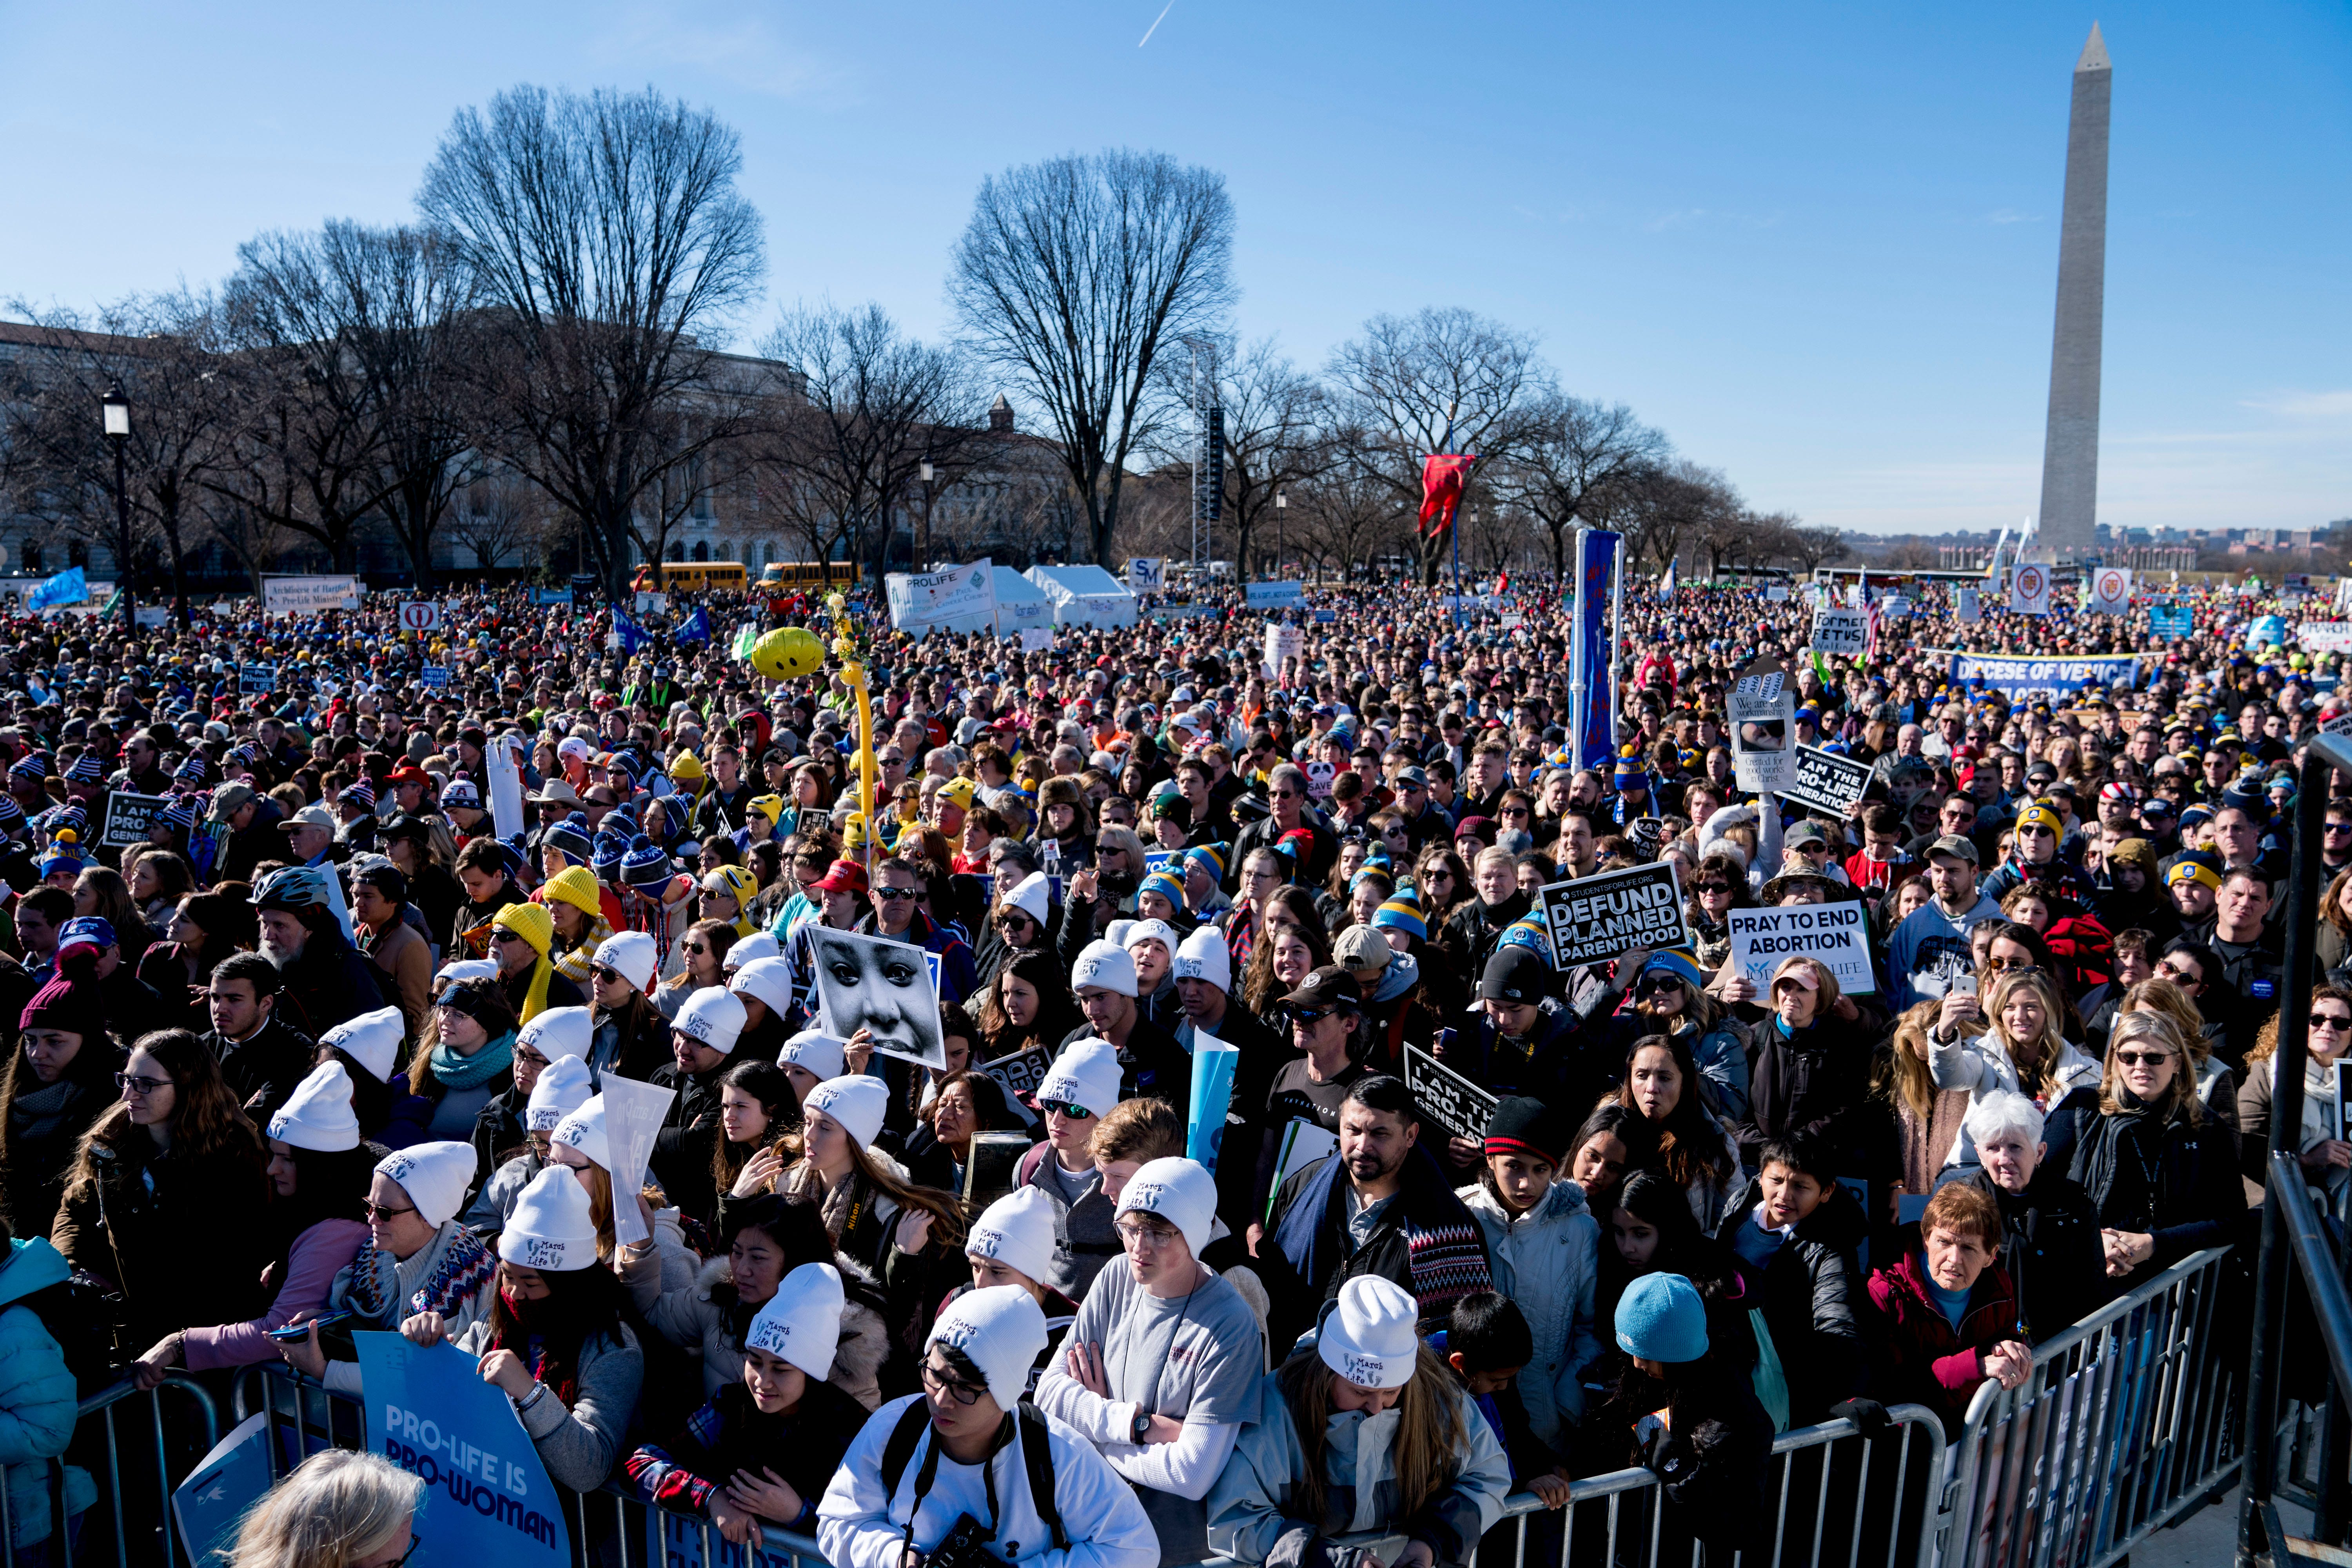 March for Life 2019: Vice President Pence makes surprise visit at DC rally